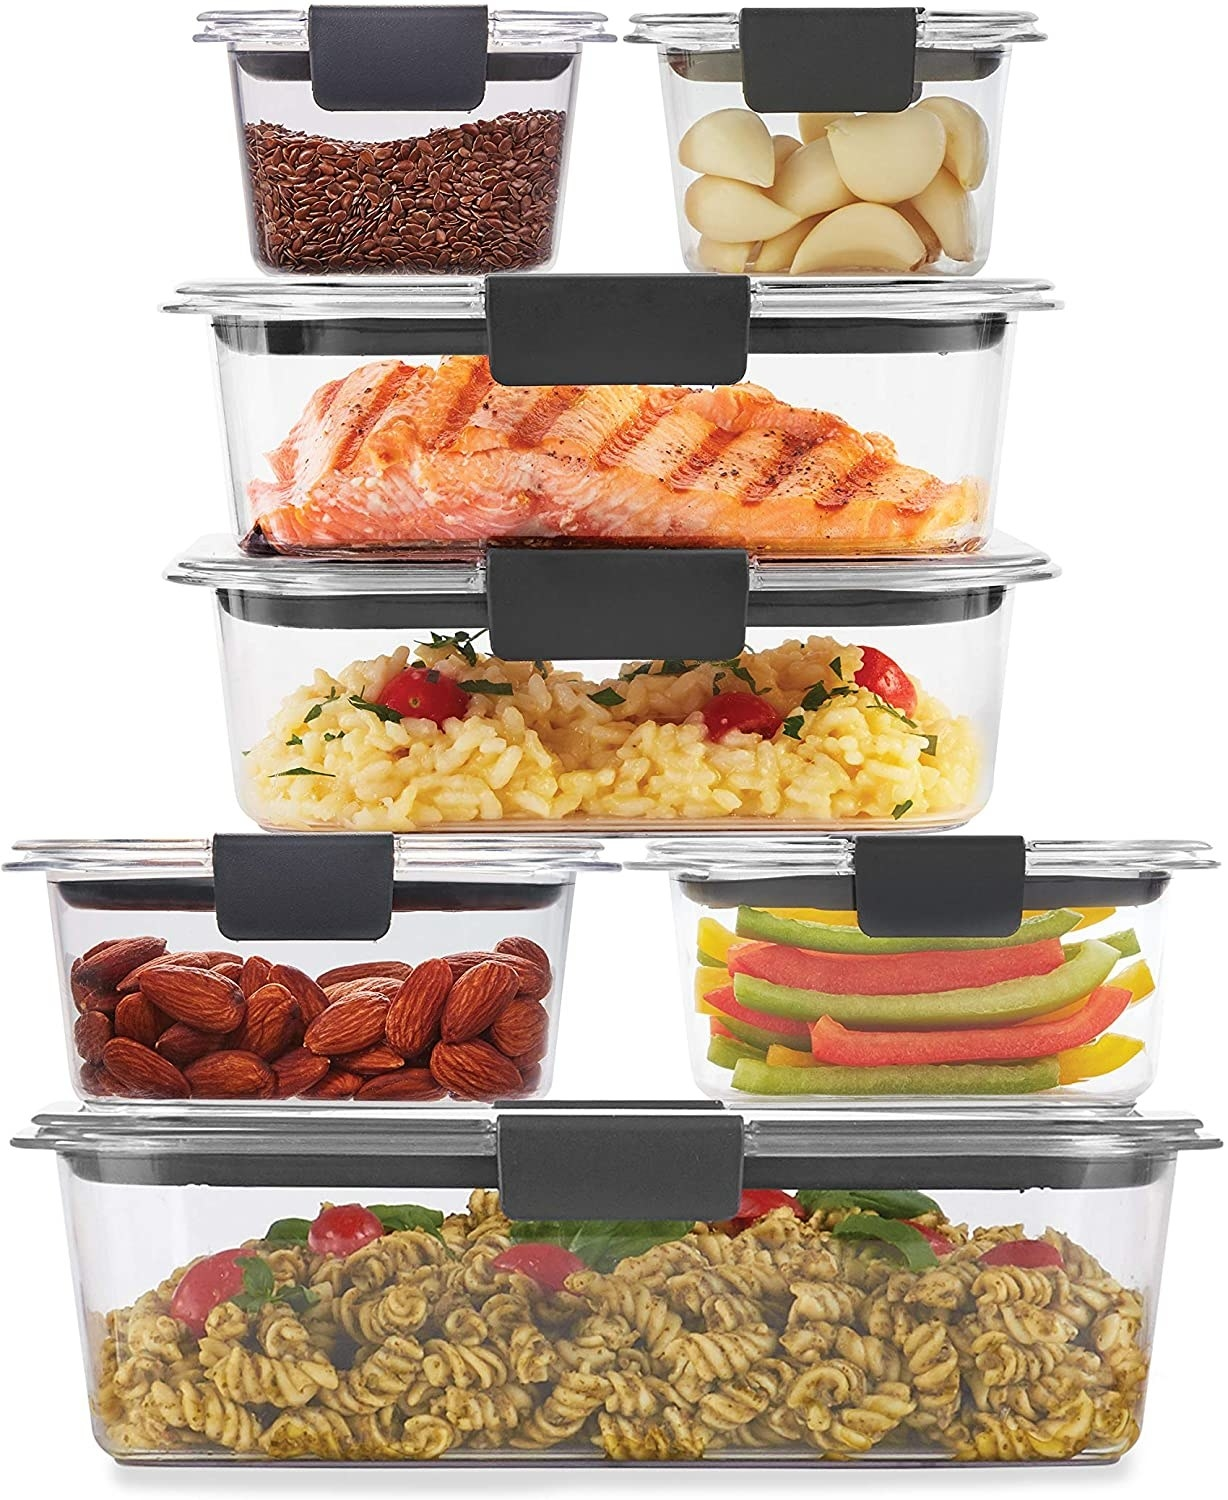 the clear containers stacked on top of each other storing left over foods